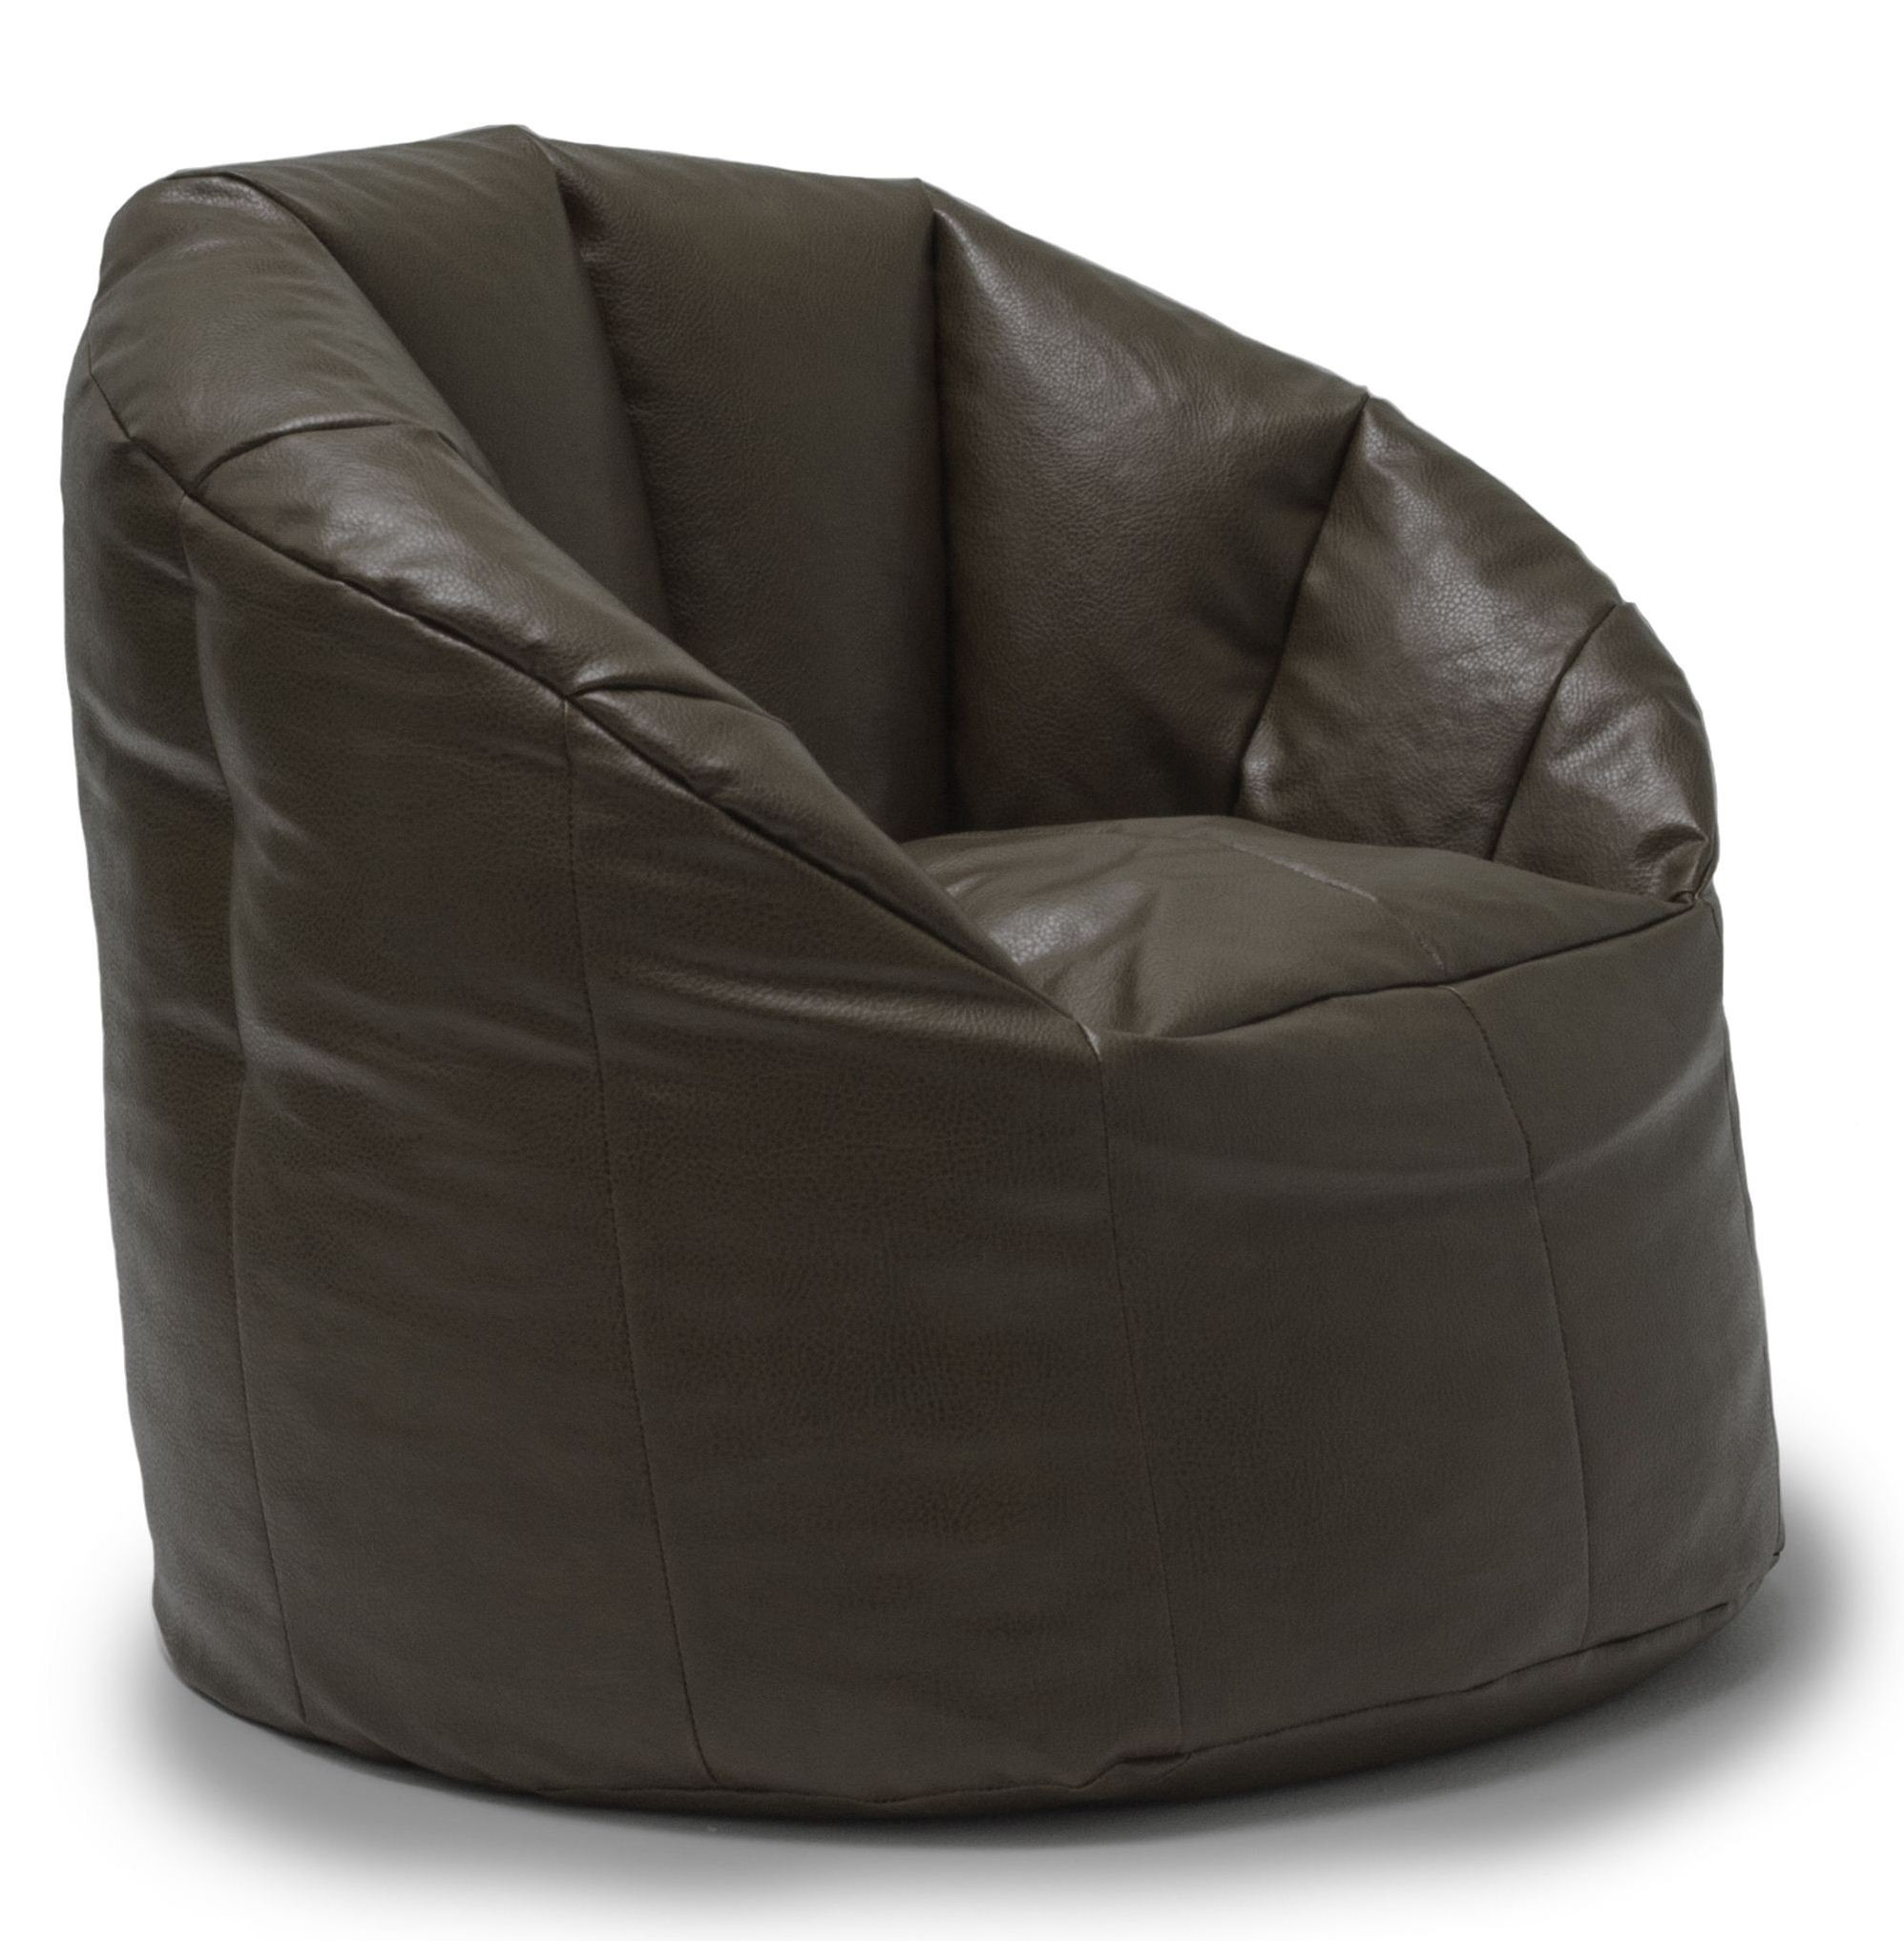 Big Joe Milano Chair Big Joe Milano Brown Vegan Leather Chair From Comfort